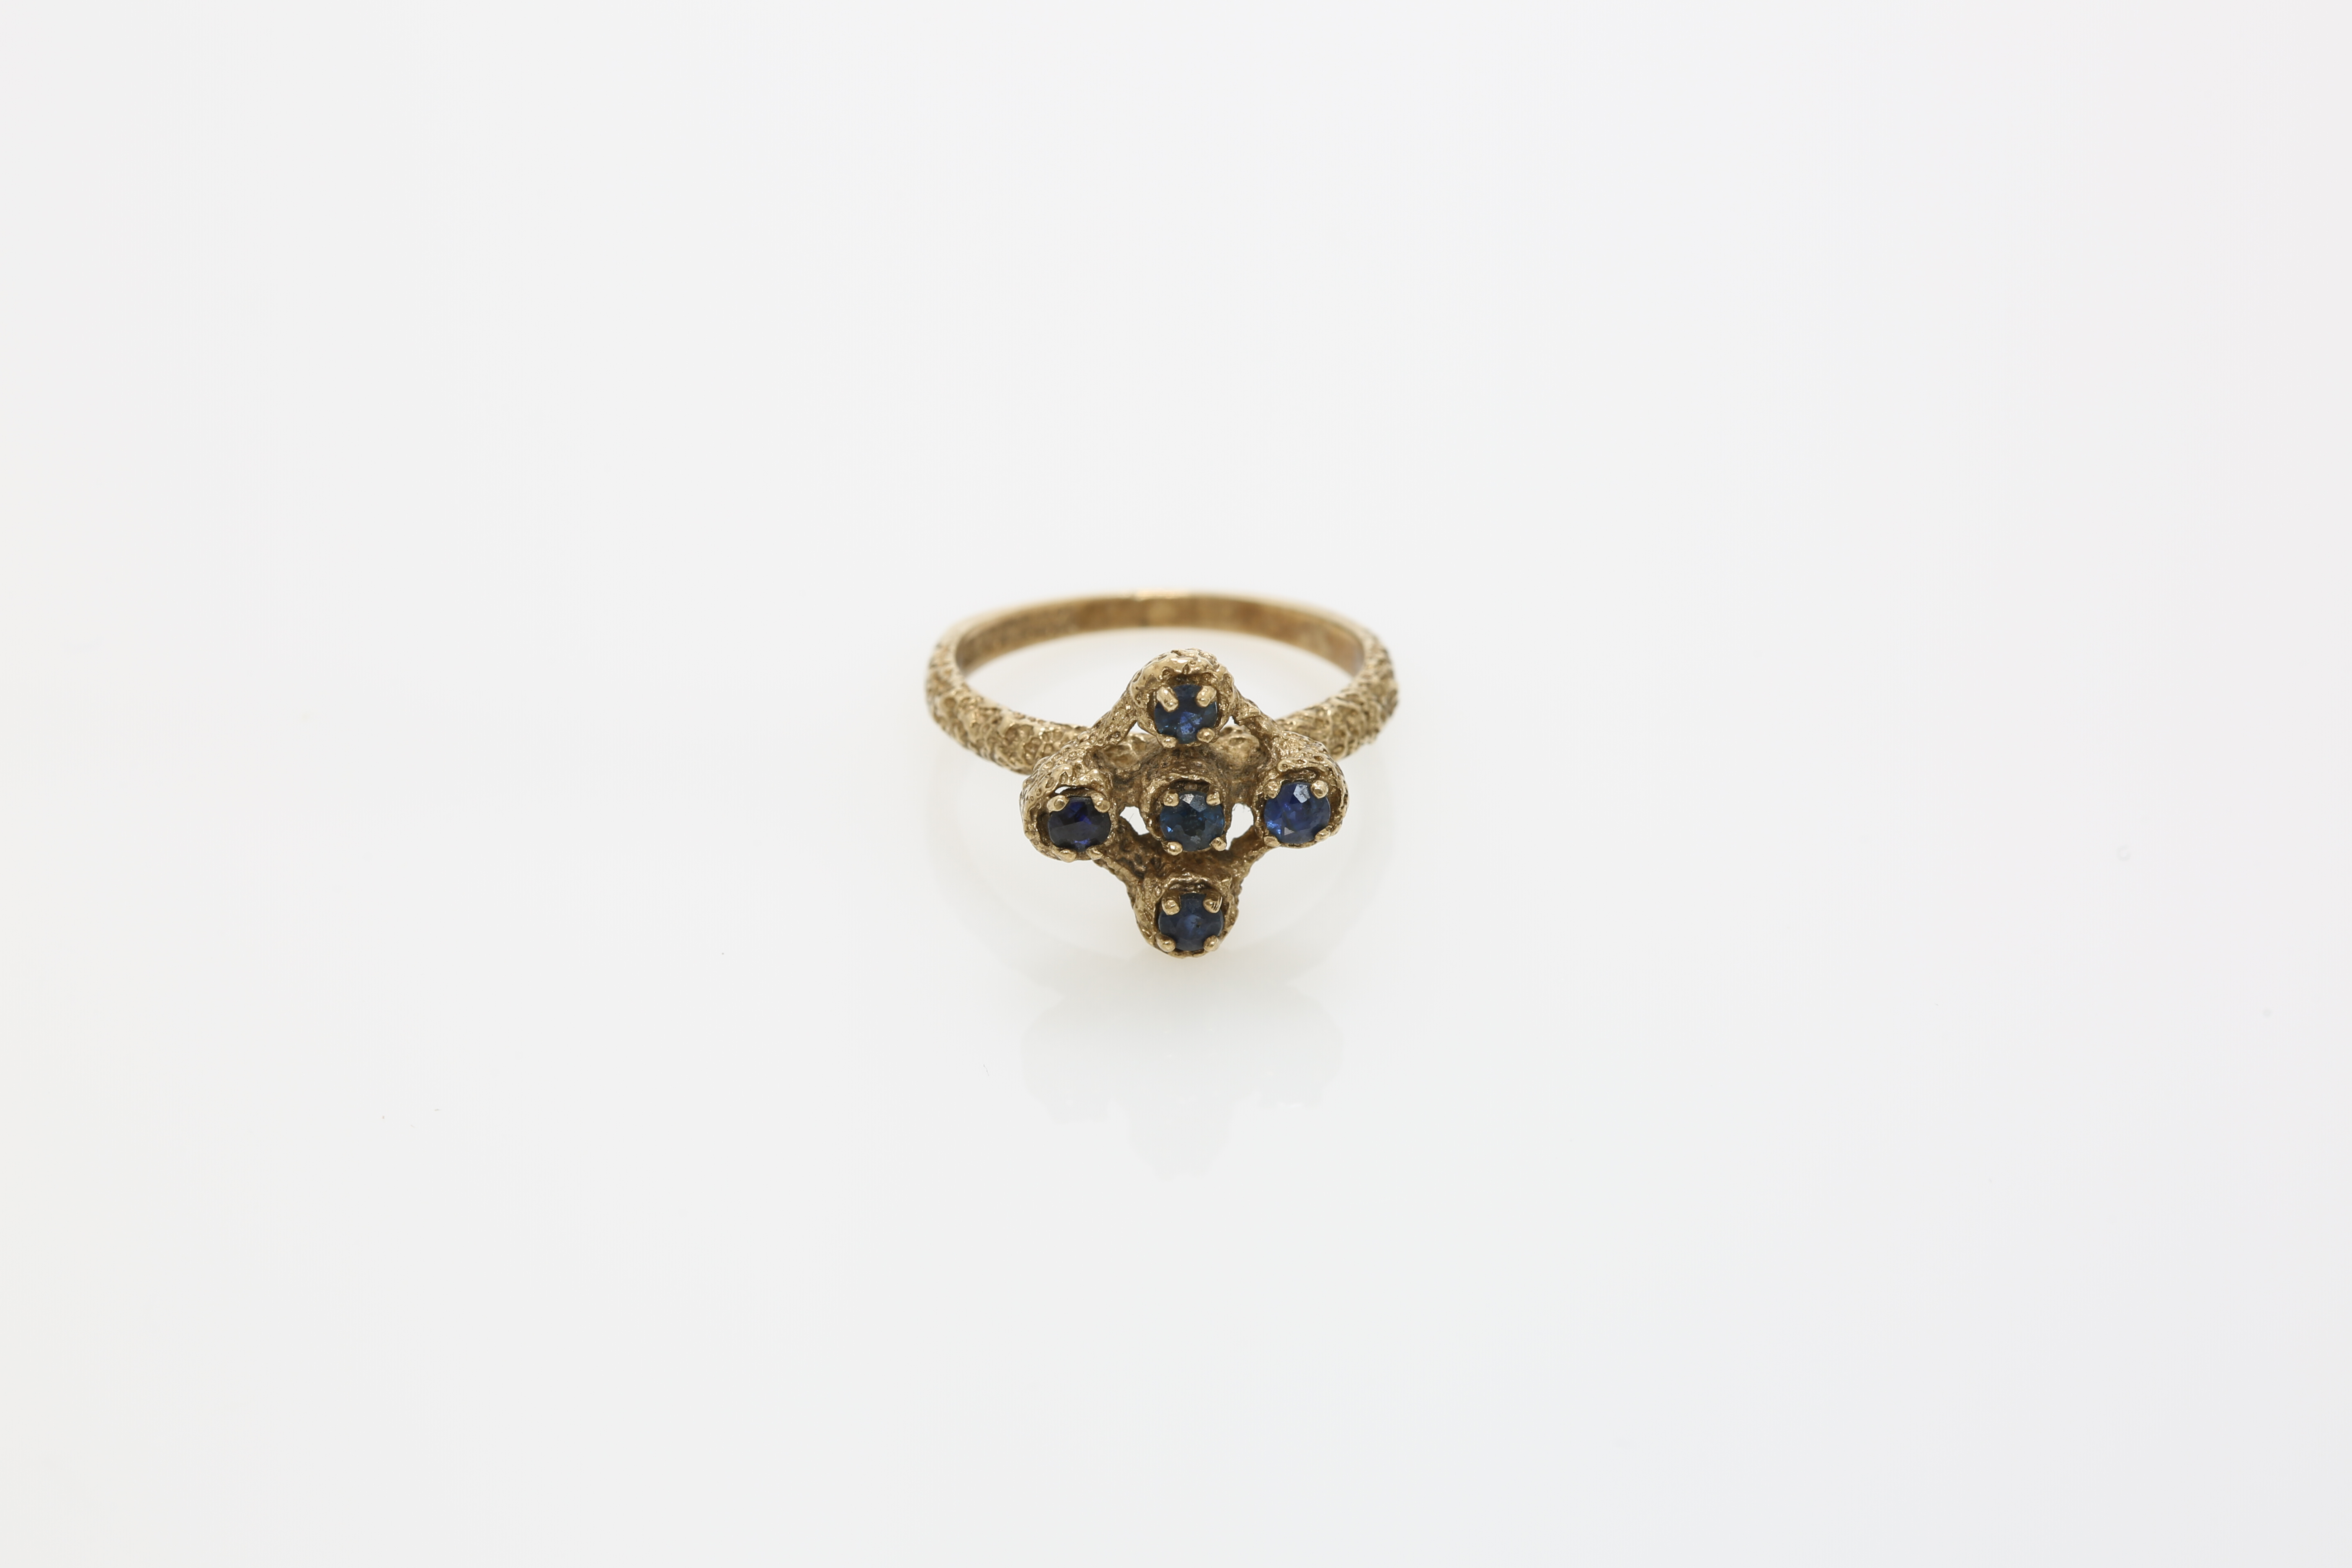 A circa 1900 9 carat gold ring. Approx: 3 gr. - Image 2 of 2